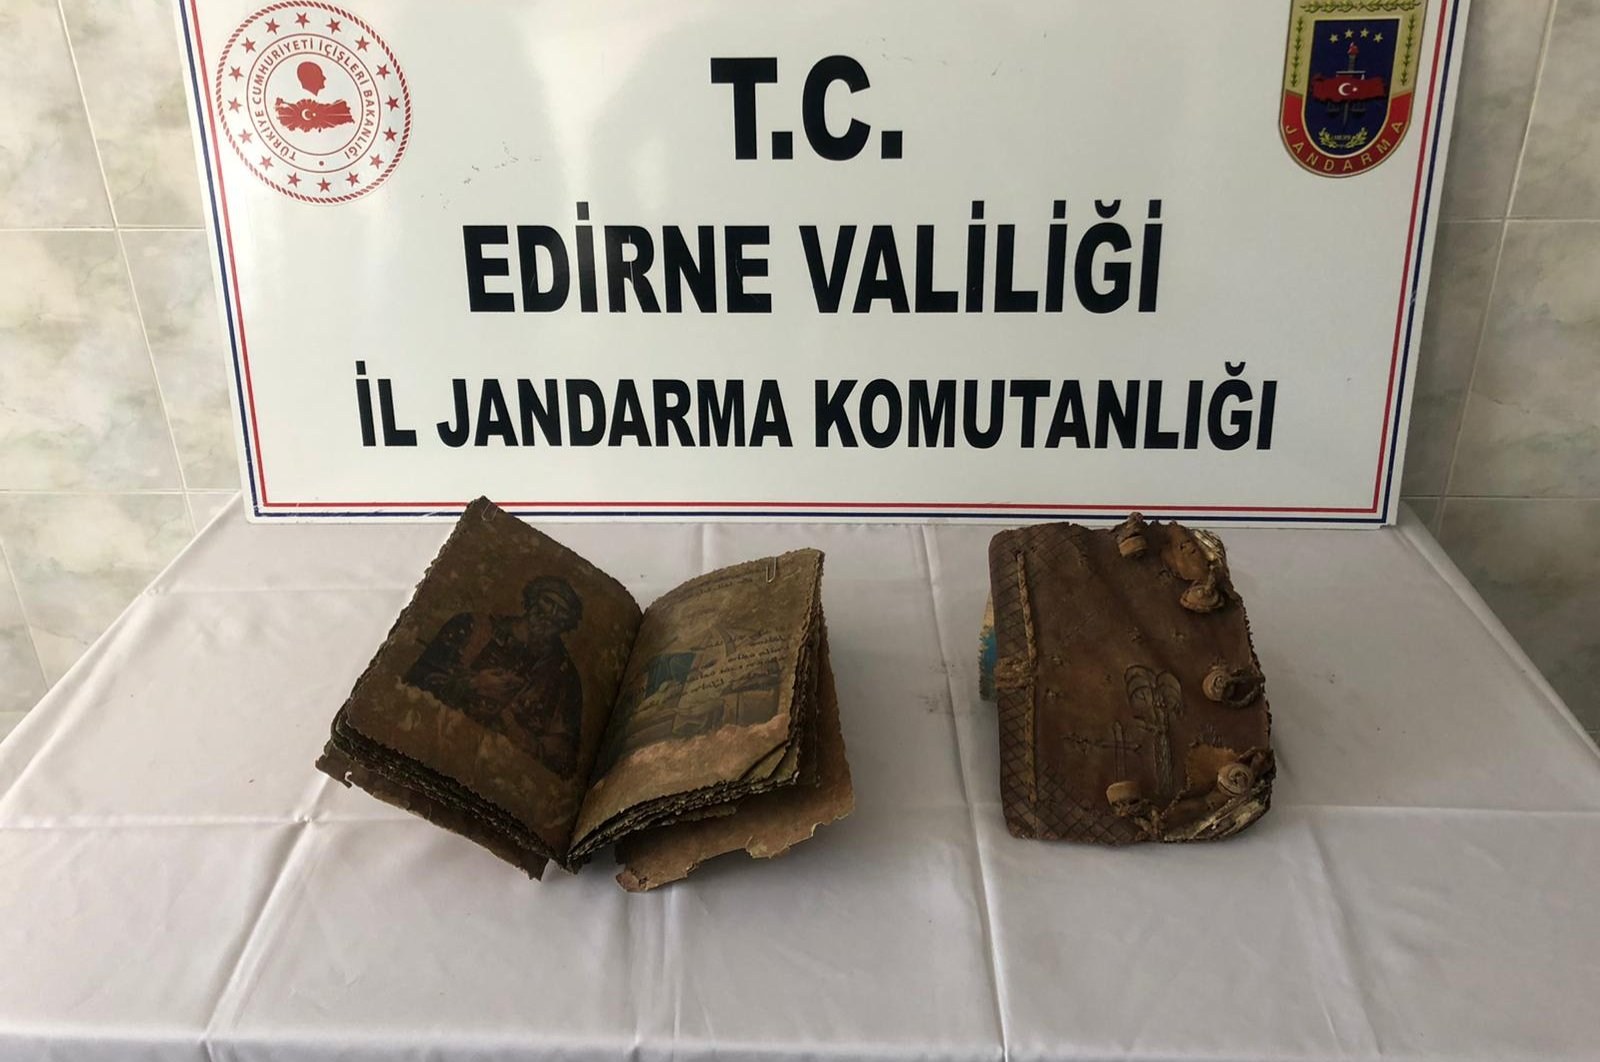 Two handwritten Bibles believed to be 500-year-old seen at the Edirne provincial gendarmerie command, May 12, 2020. (AA Photo)